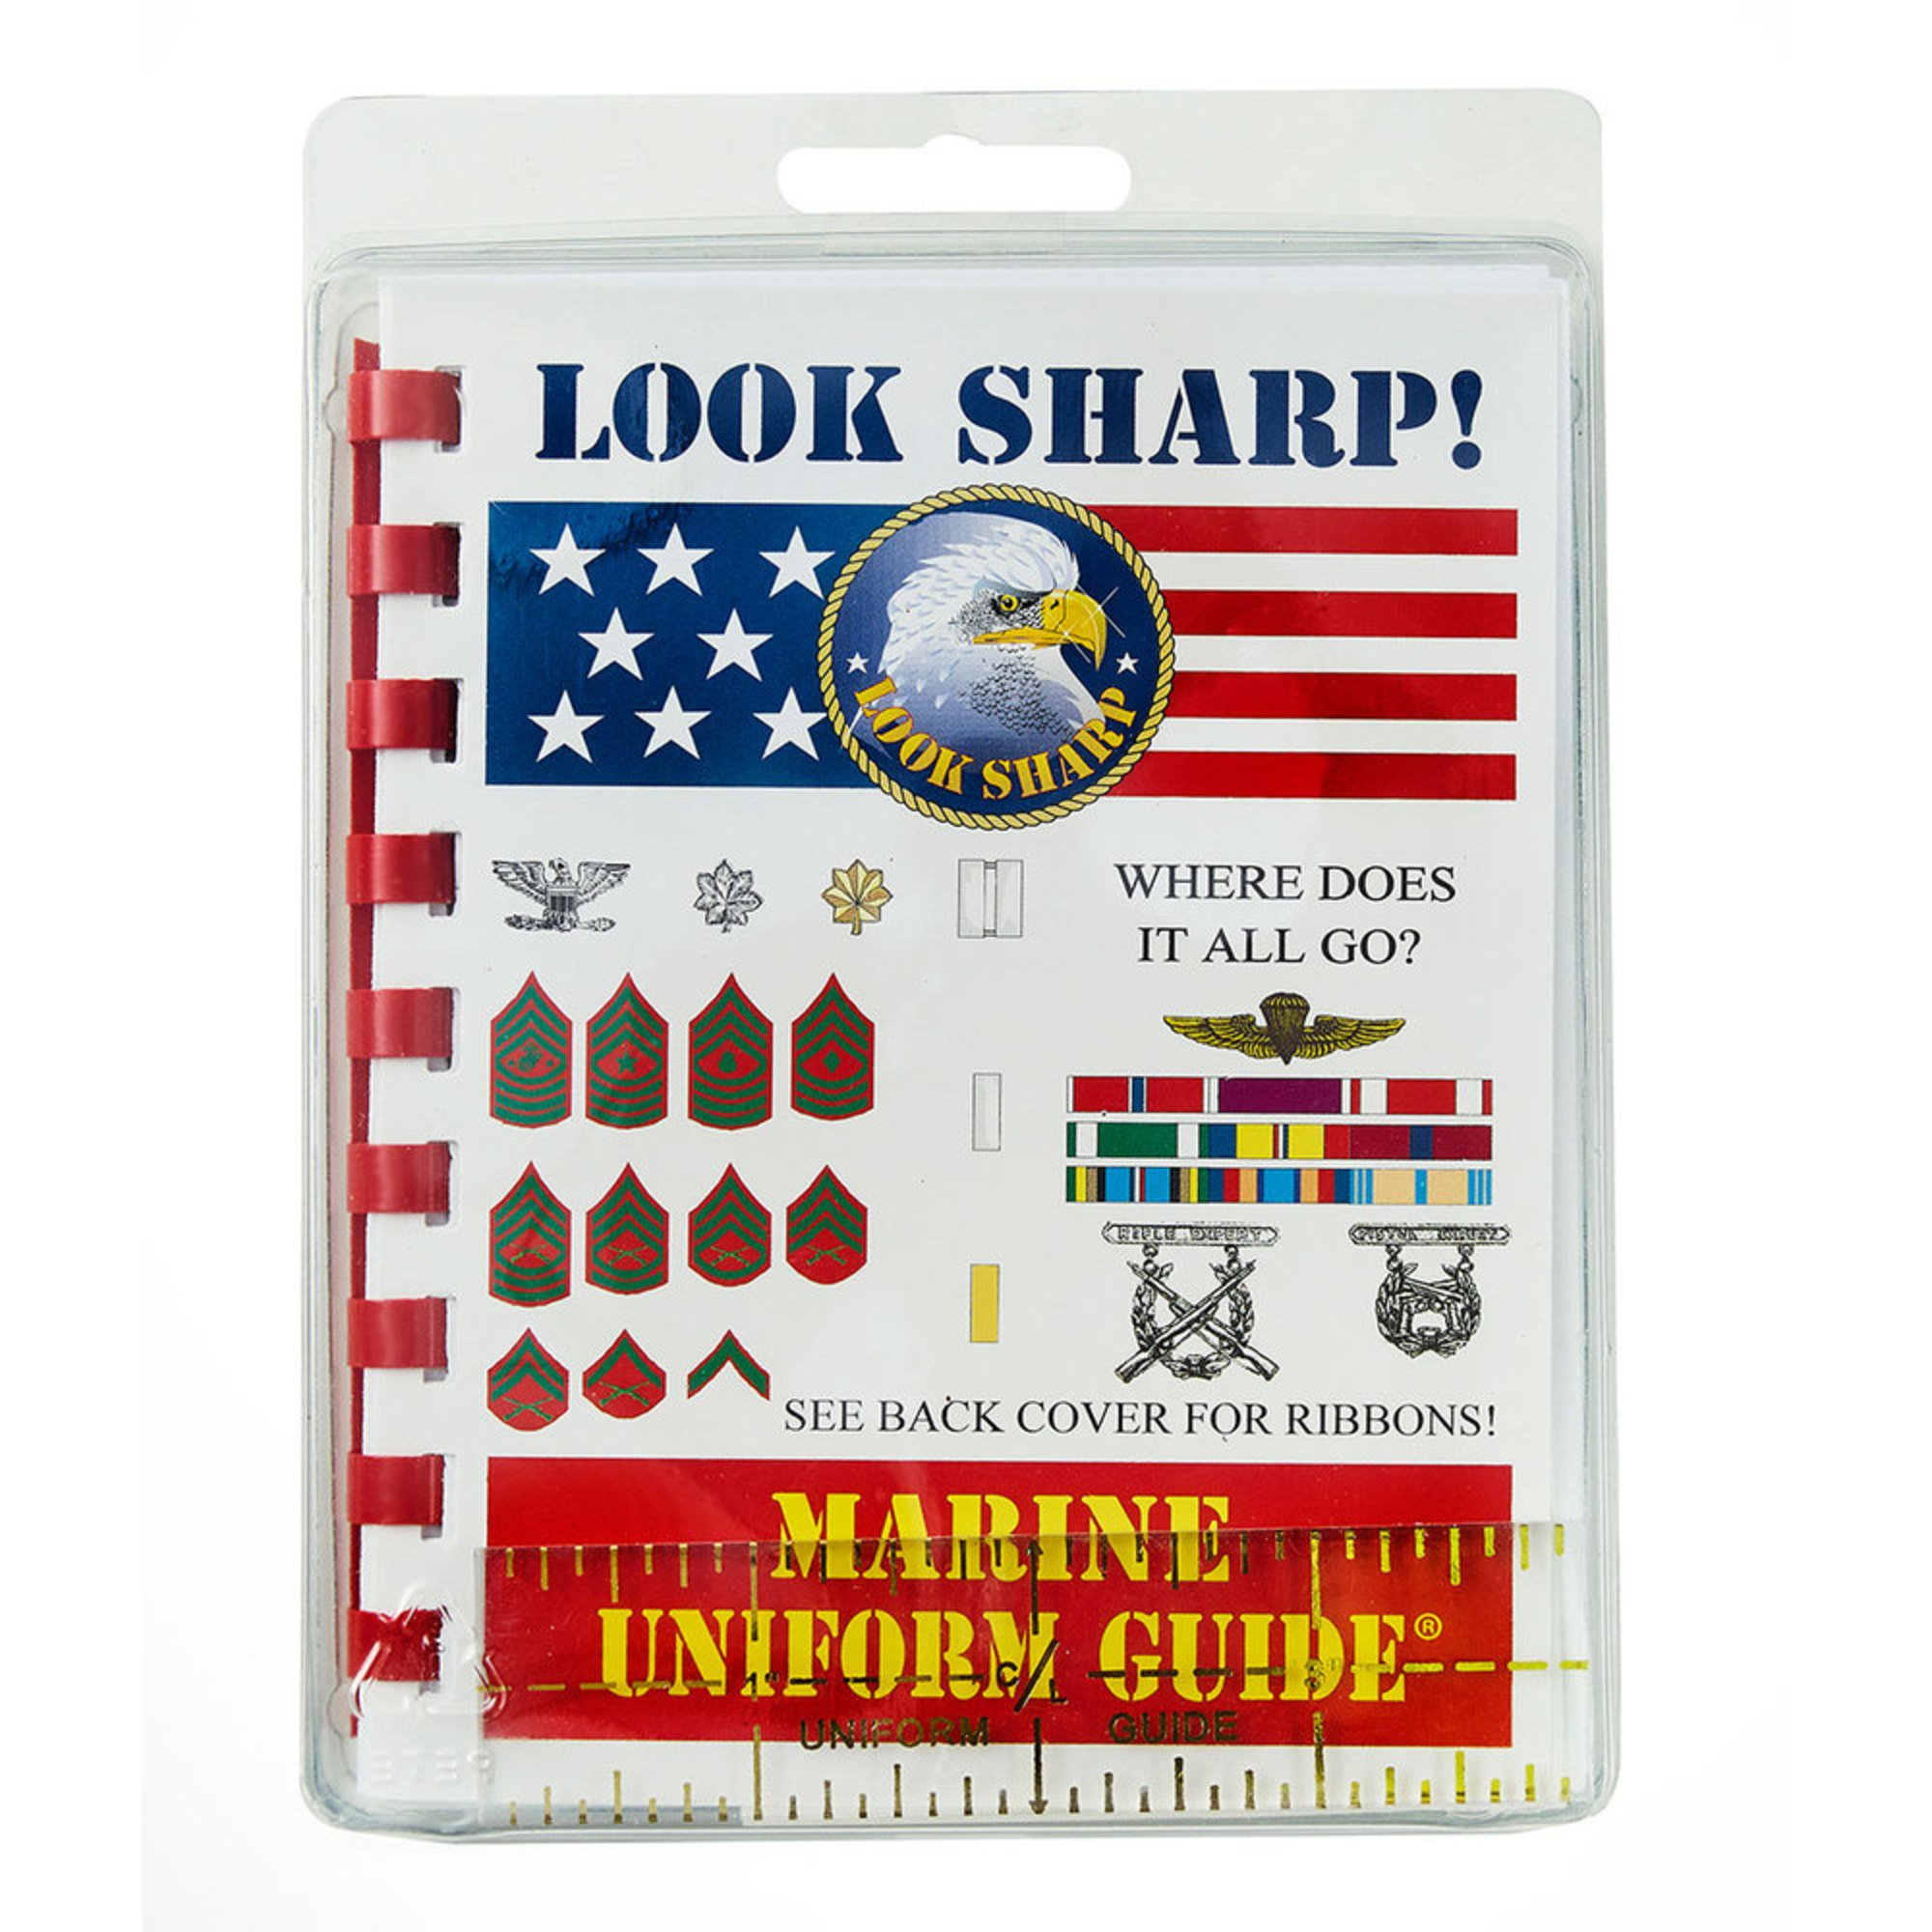 Pocket Guide Usmc Insignia Wear Guide | Guides For Mounting Ribbons